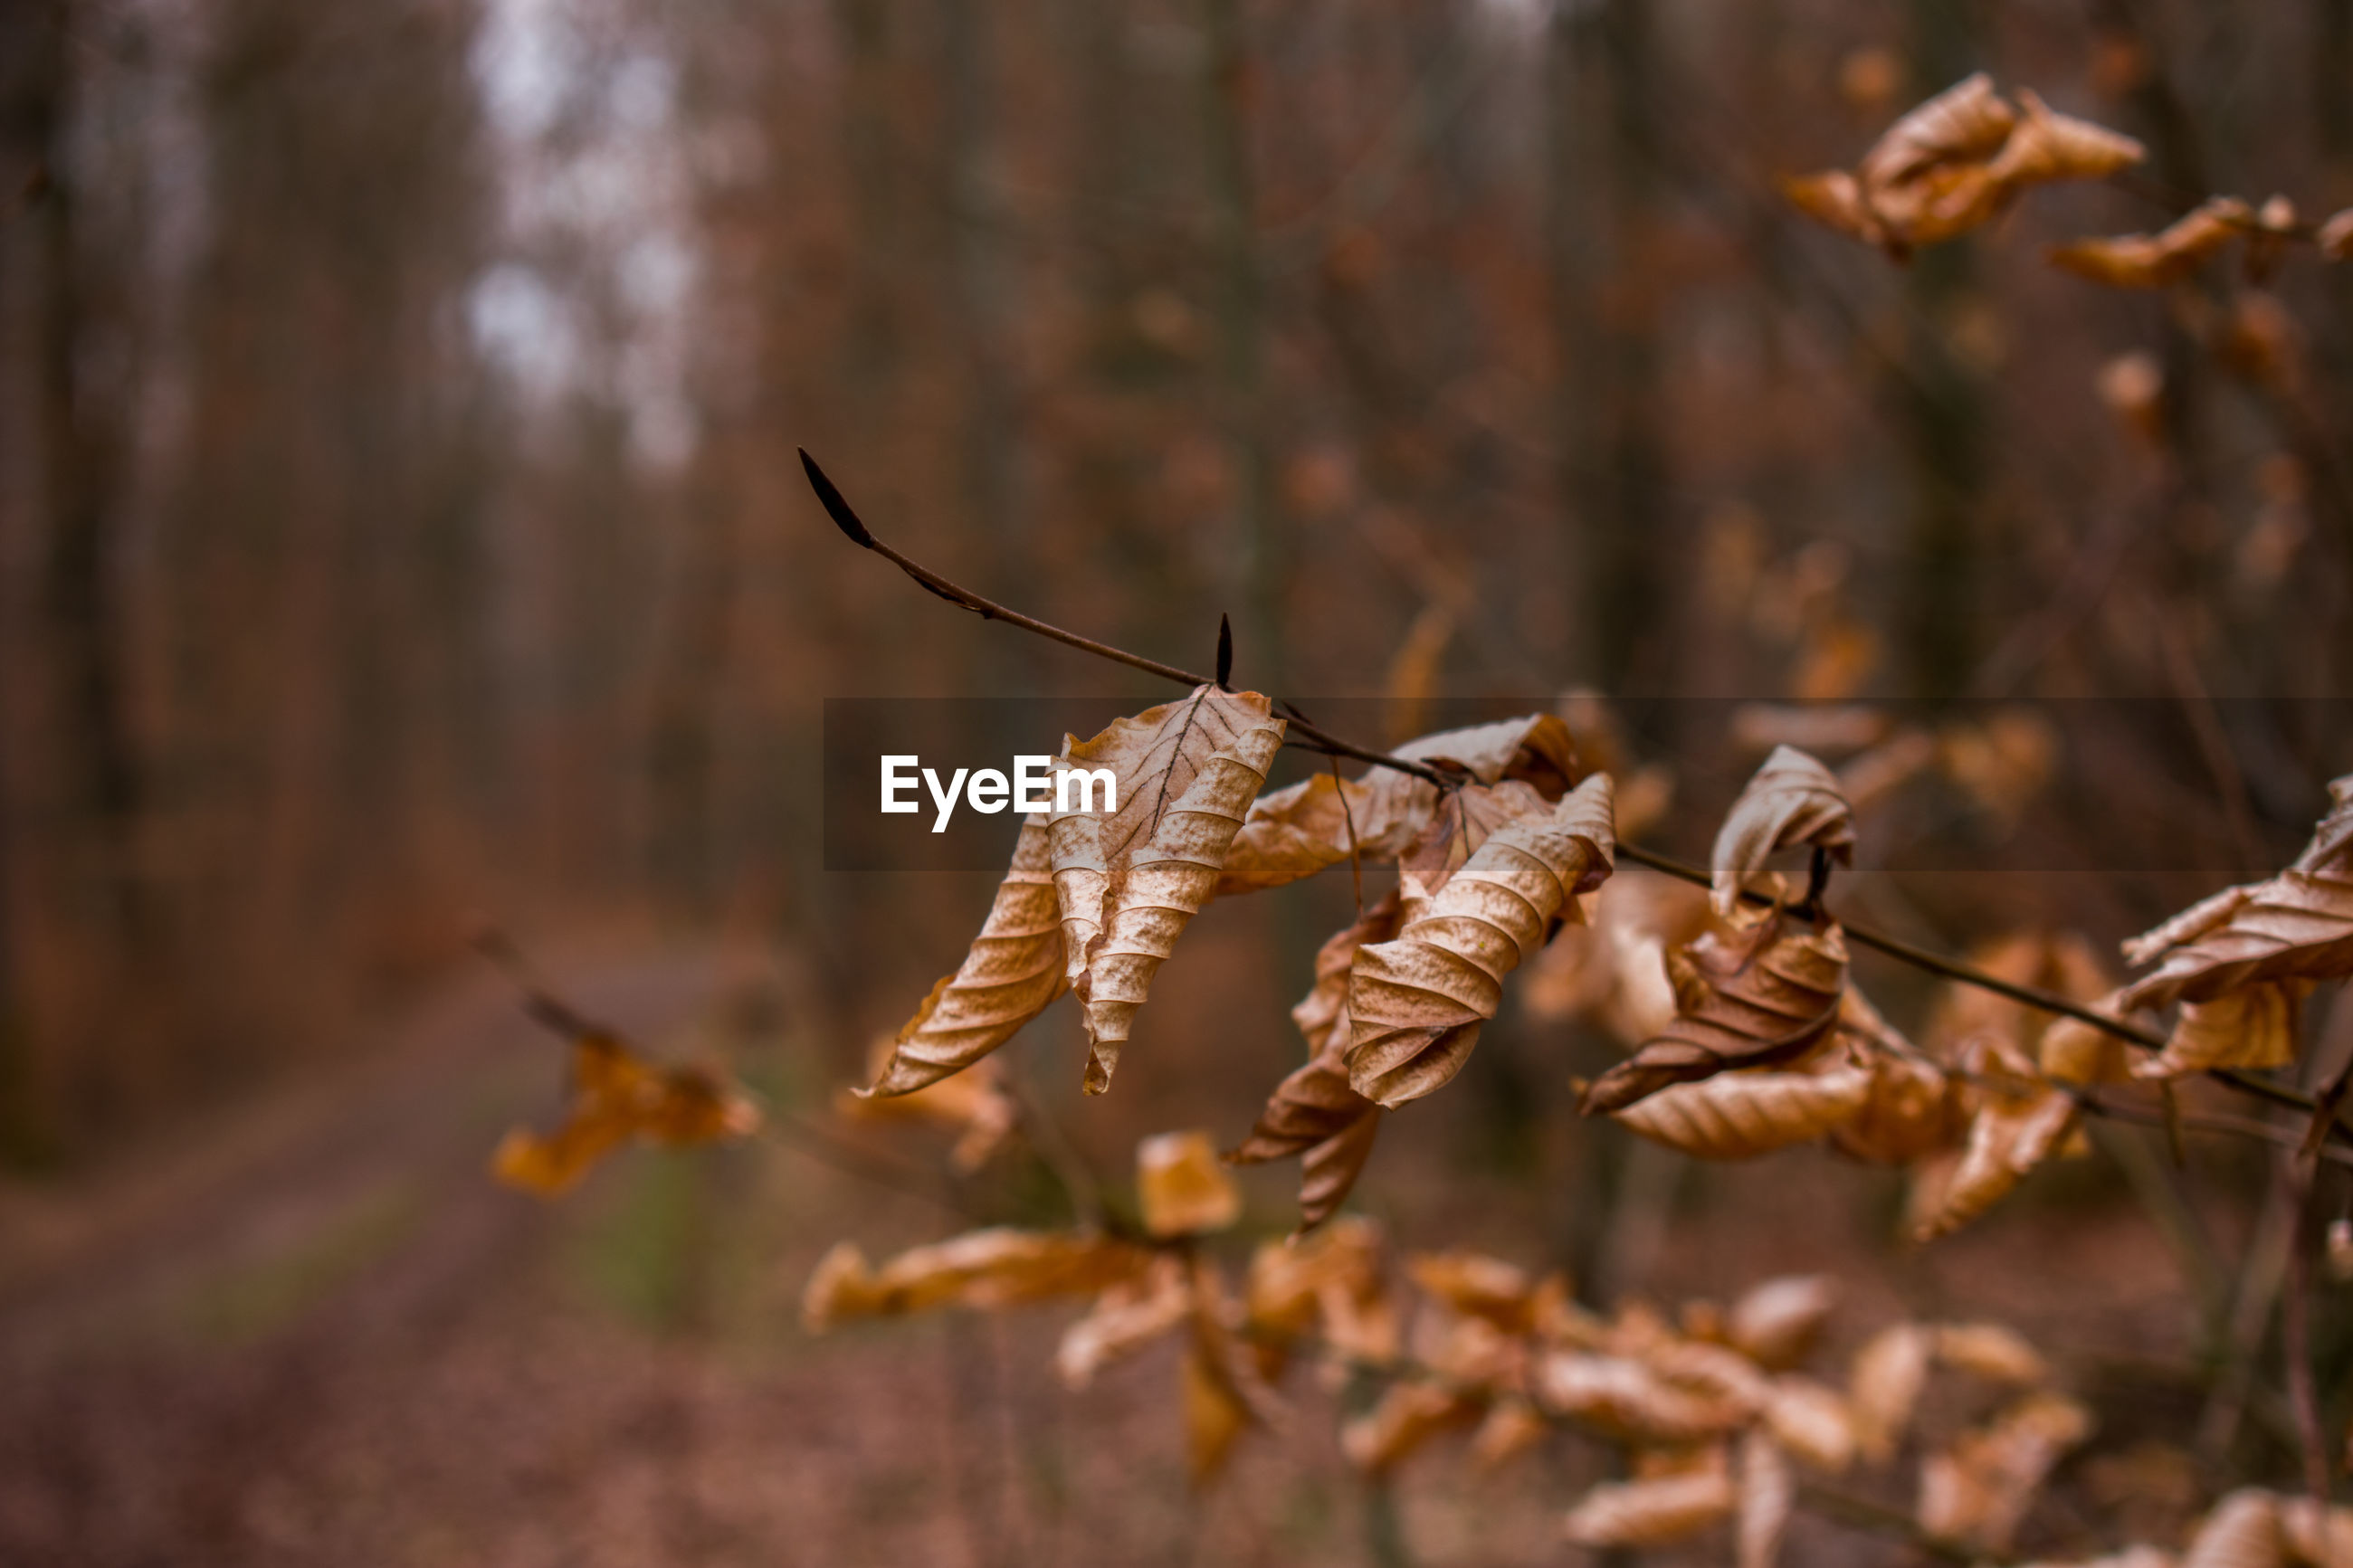 dry, focus on foreground, close-up, selective focus, no people, day, nature, plant, land, tree, outdoors, vulnerability, plant part, beauty in nature, fragility, forest, leaf, autumn, hanging, brown, dead plant, change, leaves, wilted plant, dried